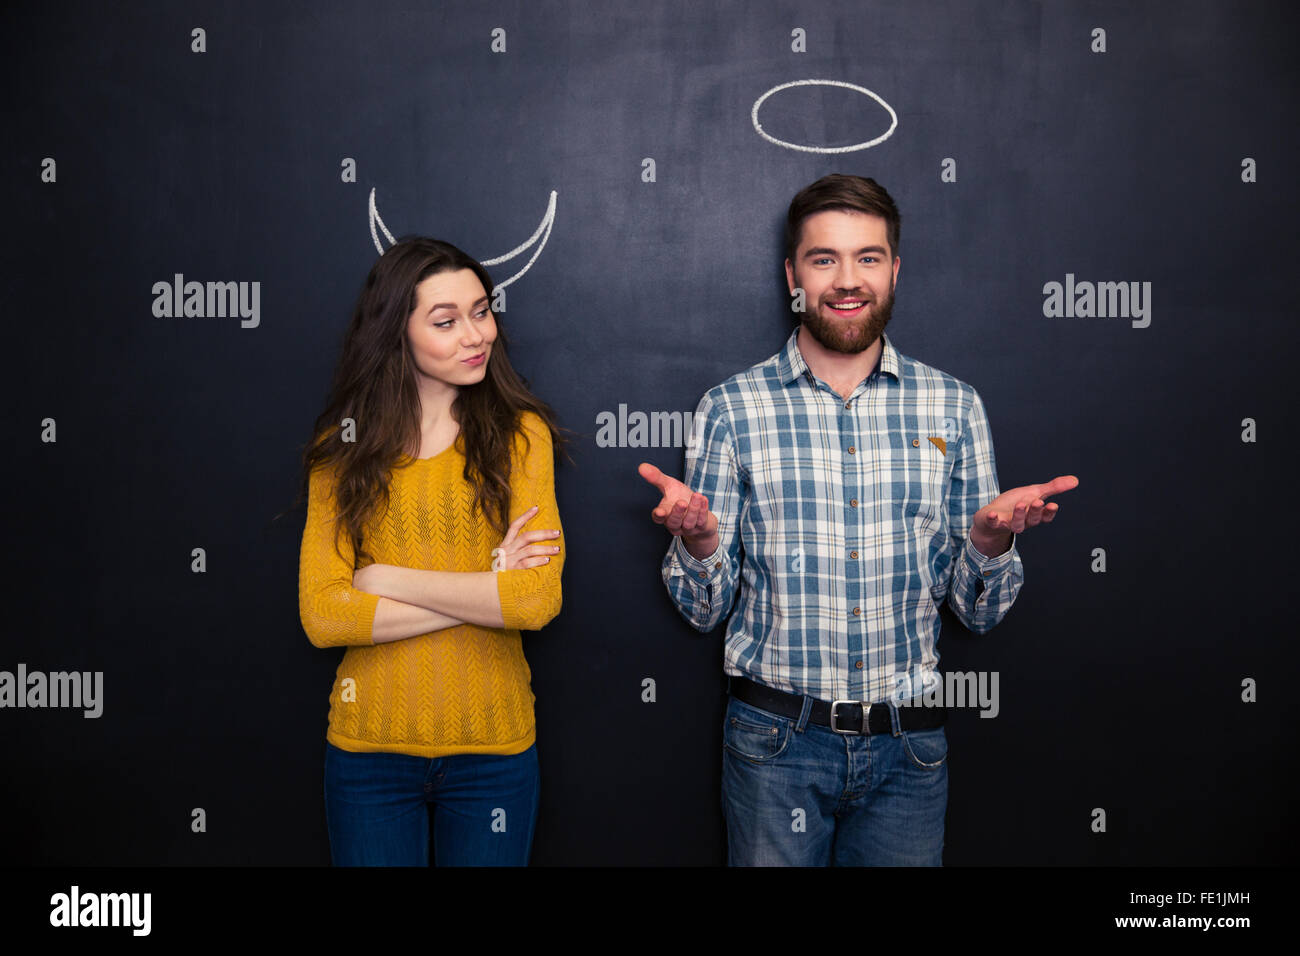 Happy young couple playing roles of devil and angel standing over blackboard background Stock Photo